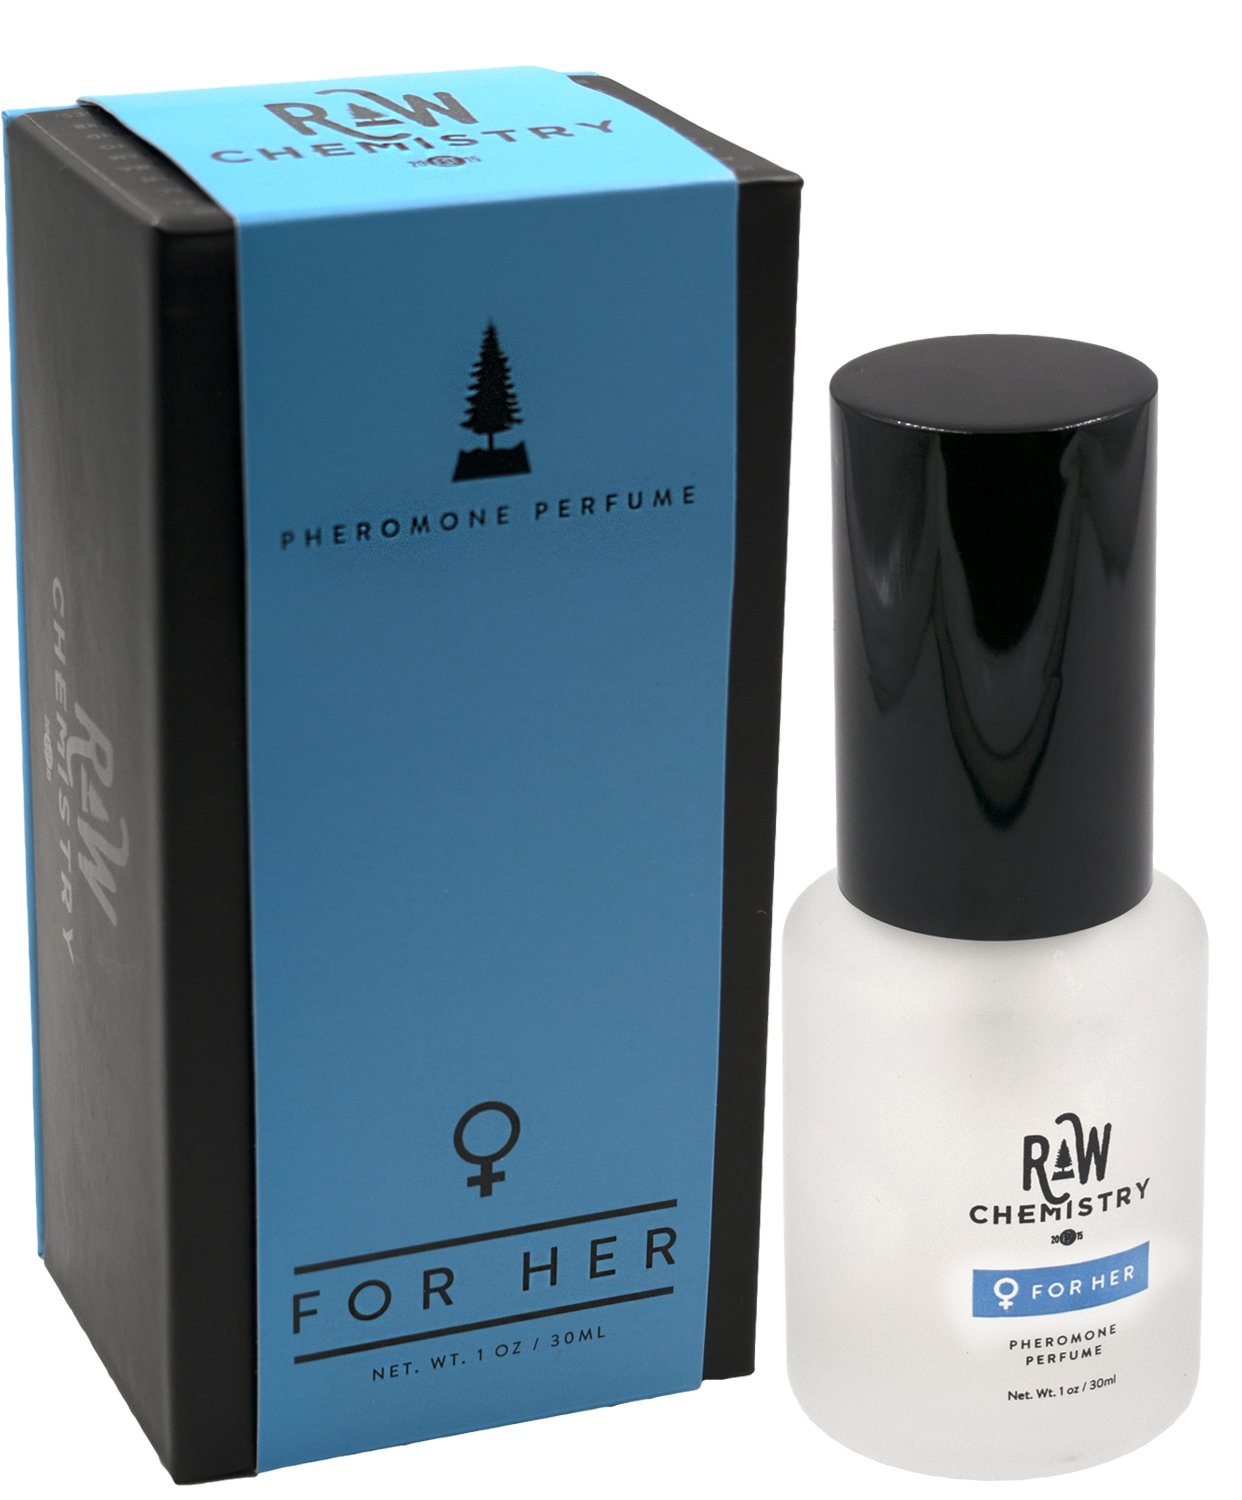 Pheromones For Women Pheromone Perfume Spray [Attract Men] - Elegance, Extra Strength Human Pheromones Formula by RawChemistry (1 Fl. Oz Spray) RawChemistry.com RC-PS-0002